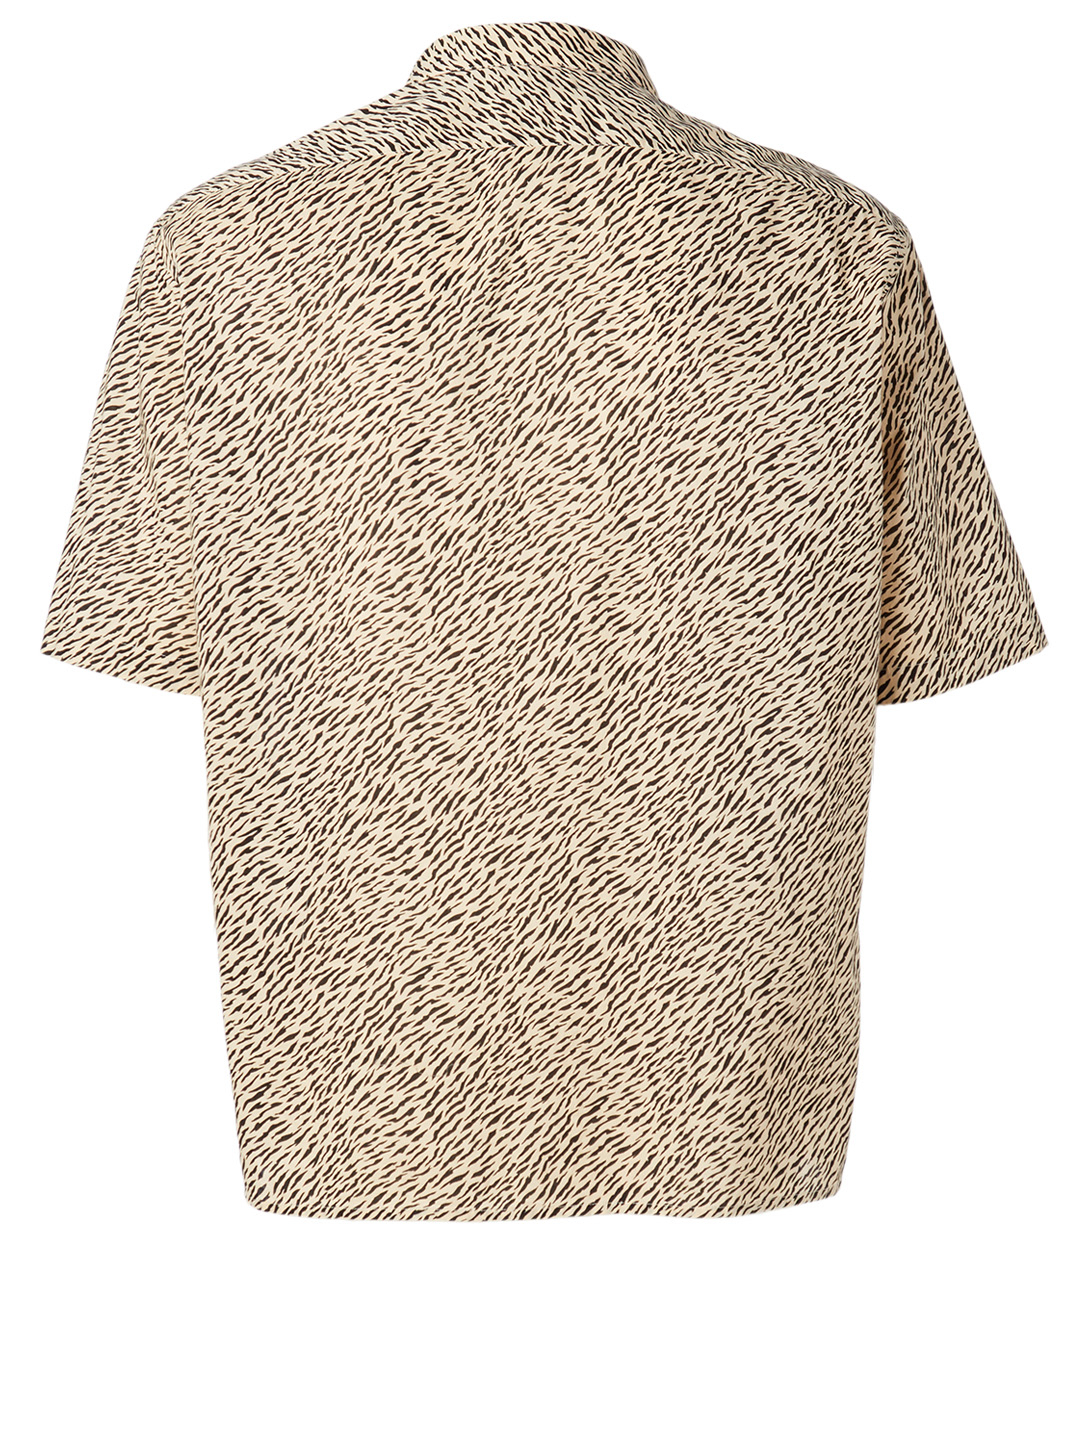 SAINT LAURENT Cotton Short-Sleeve Shirt In Zebra Print Men's Beige